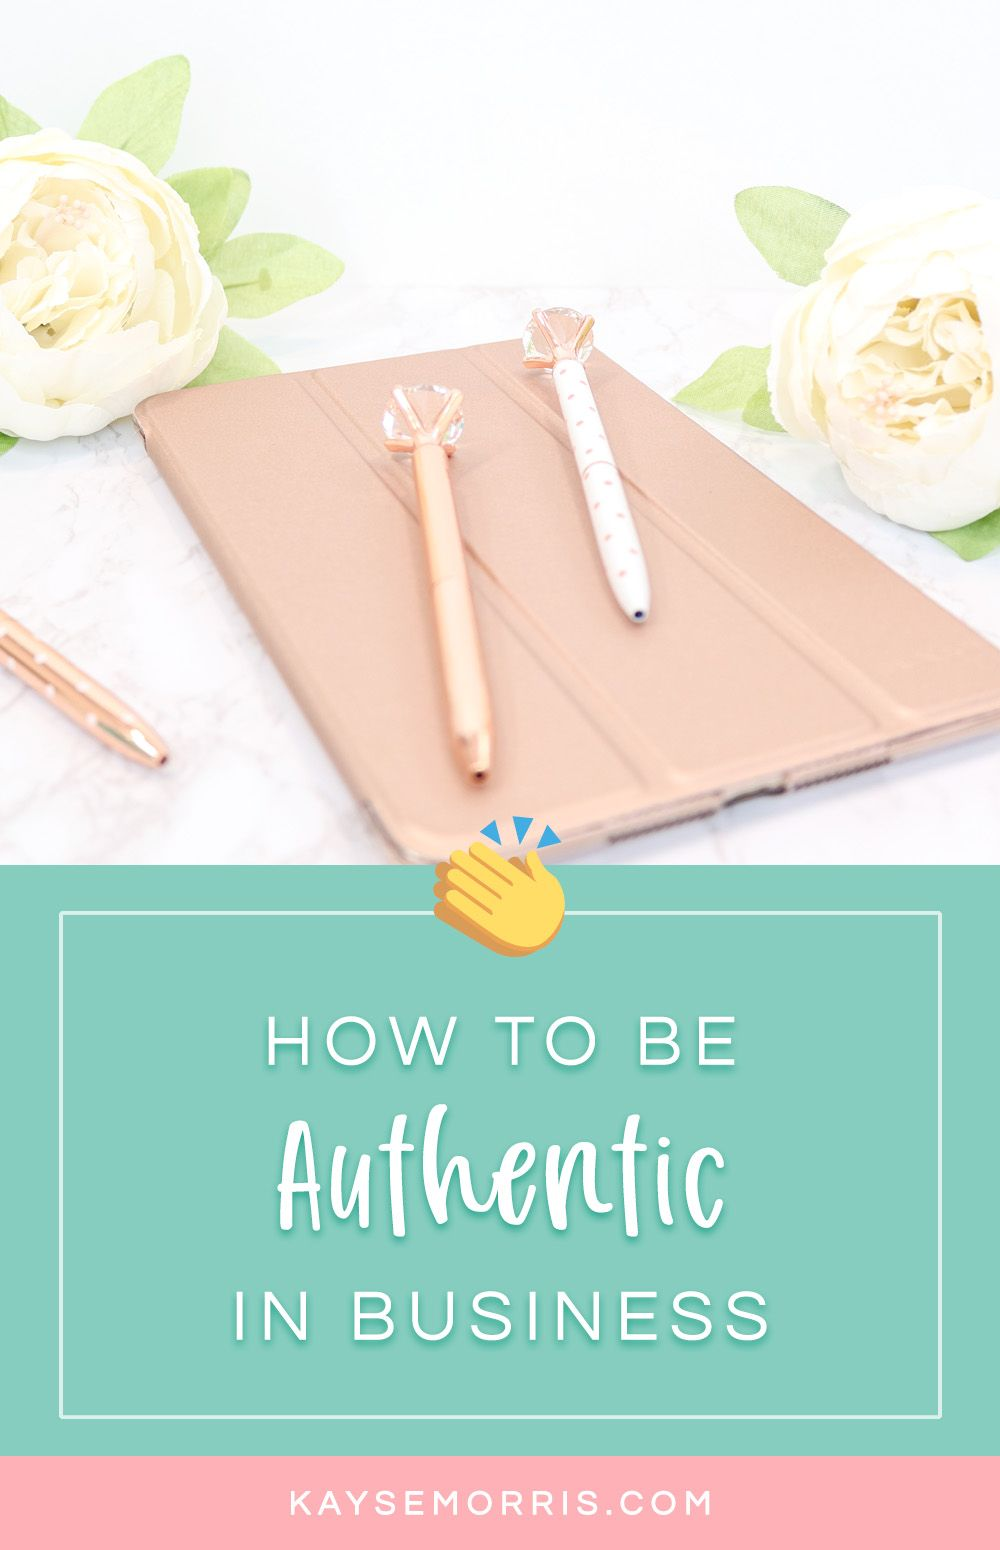 003 Your Most Authentic Self · Kayse Morris in 2020